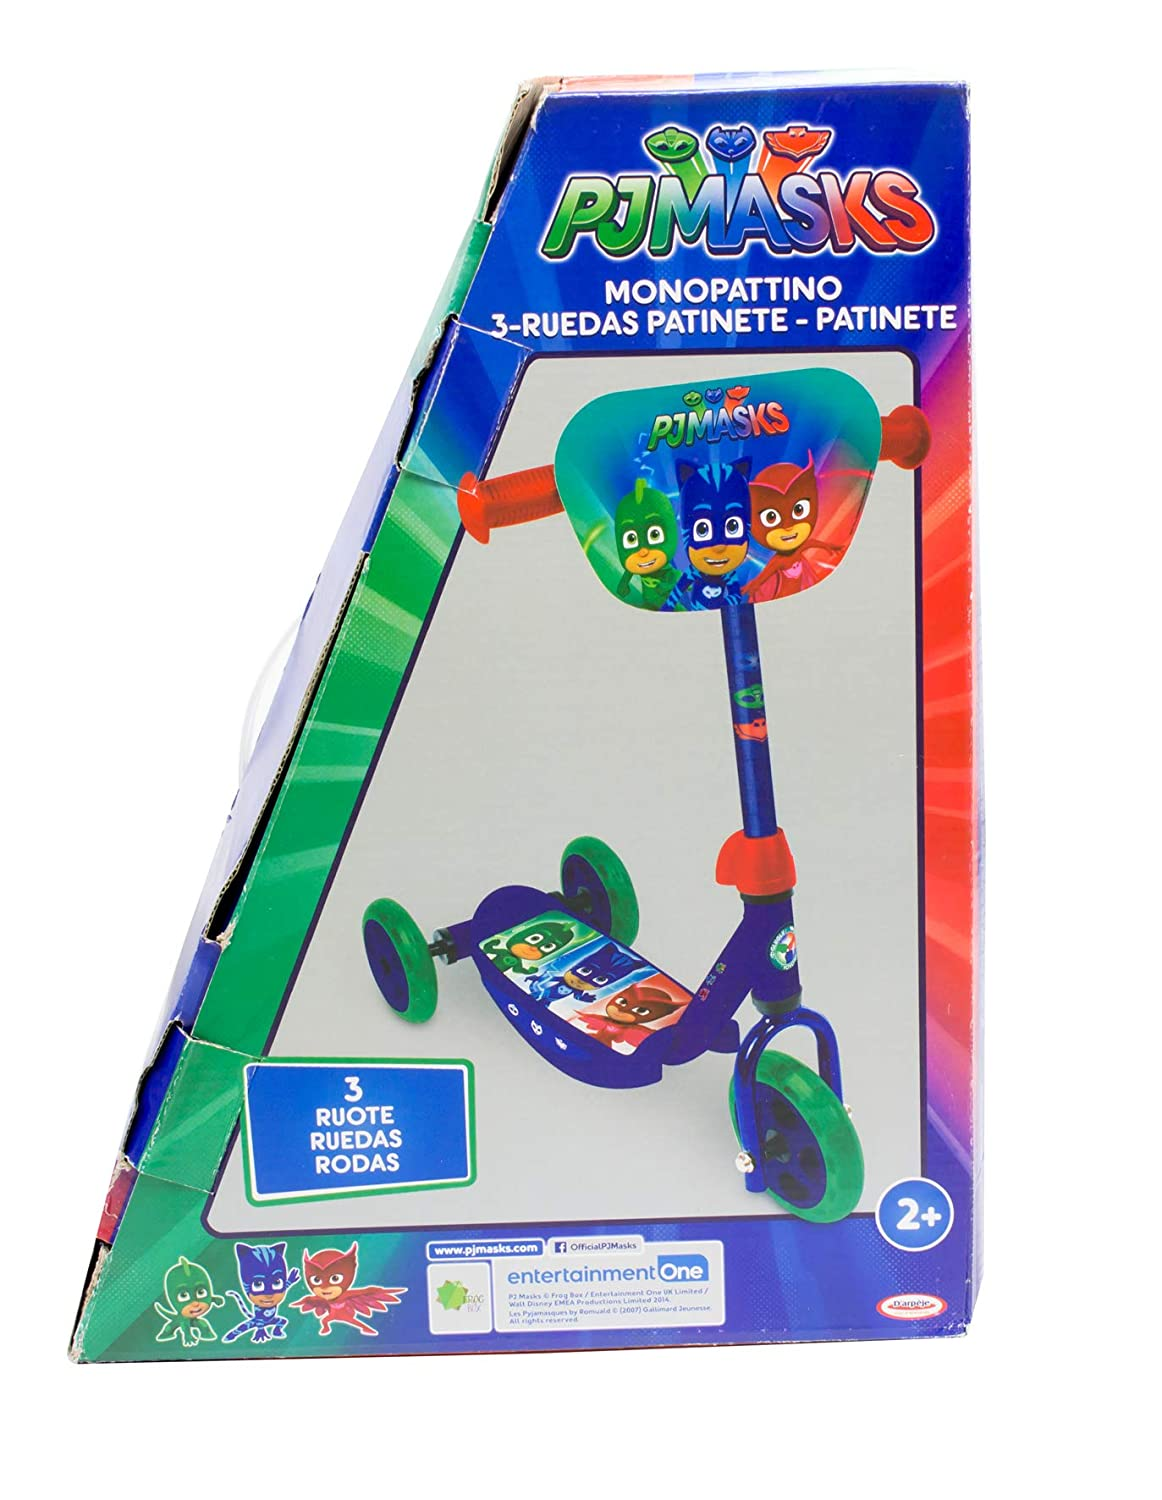 Amazon.com: PJ Masks OPJM110 Kids Three Wheel Tri Scooter ...